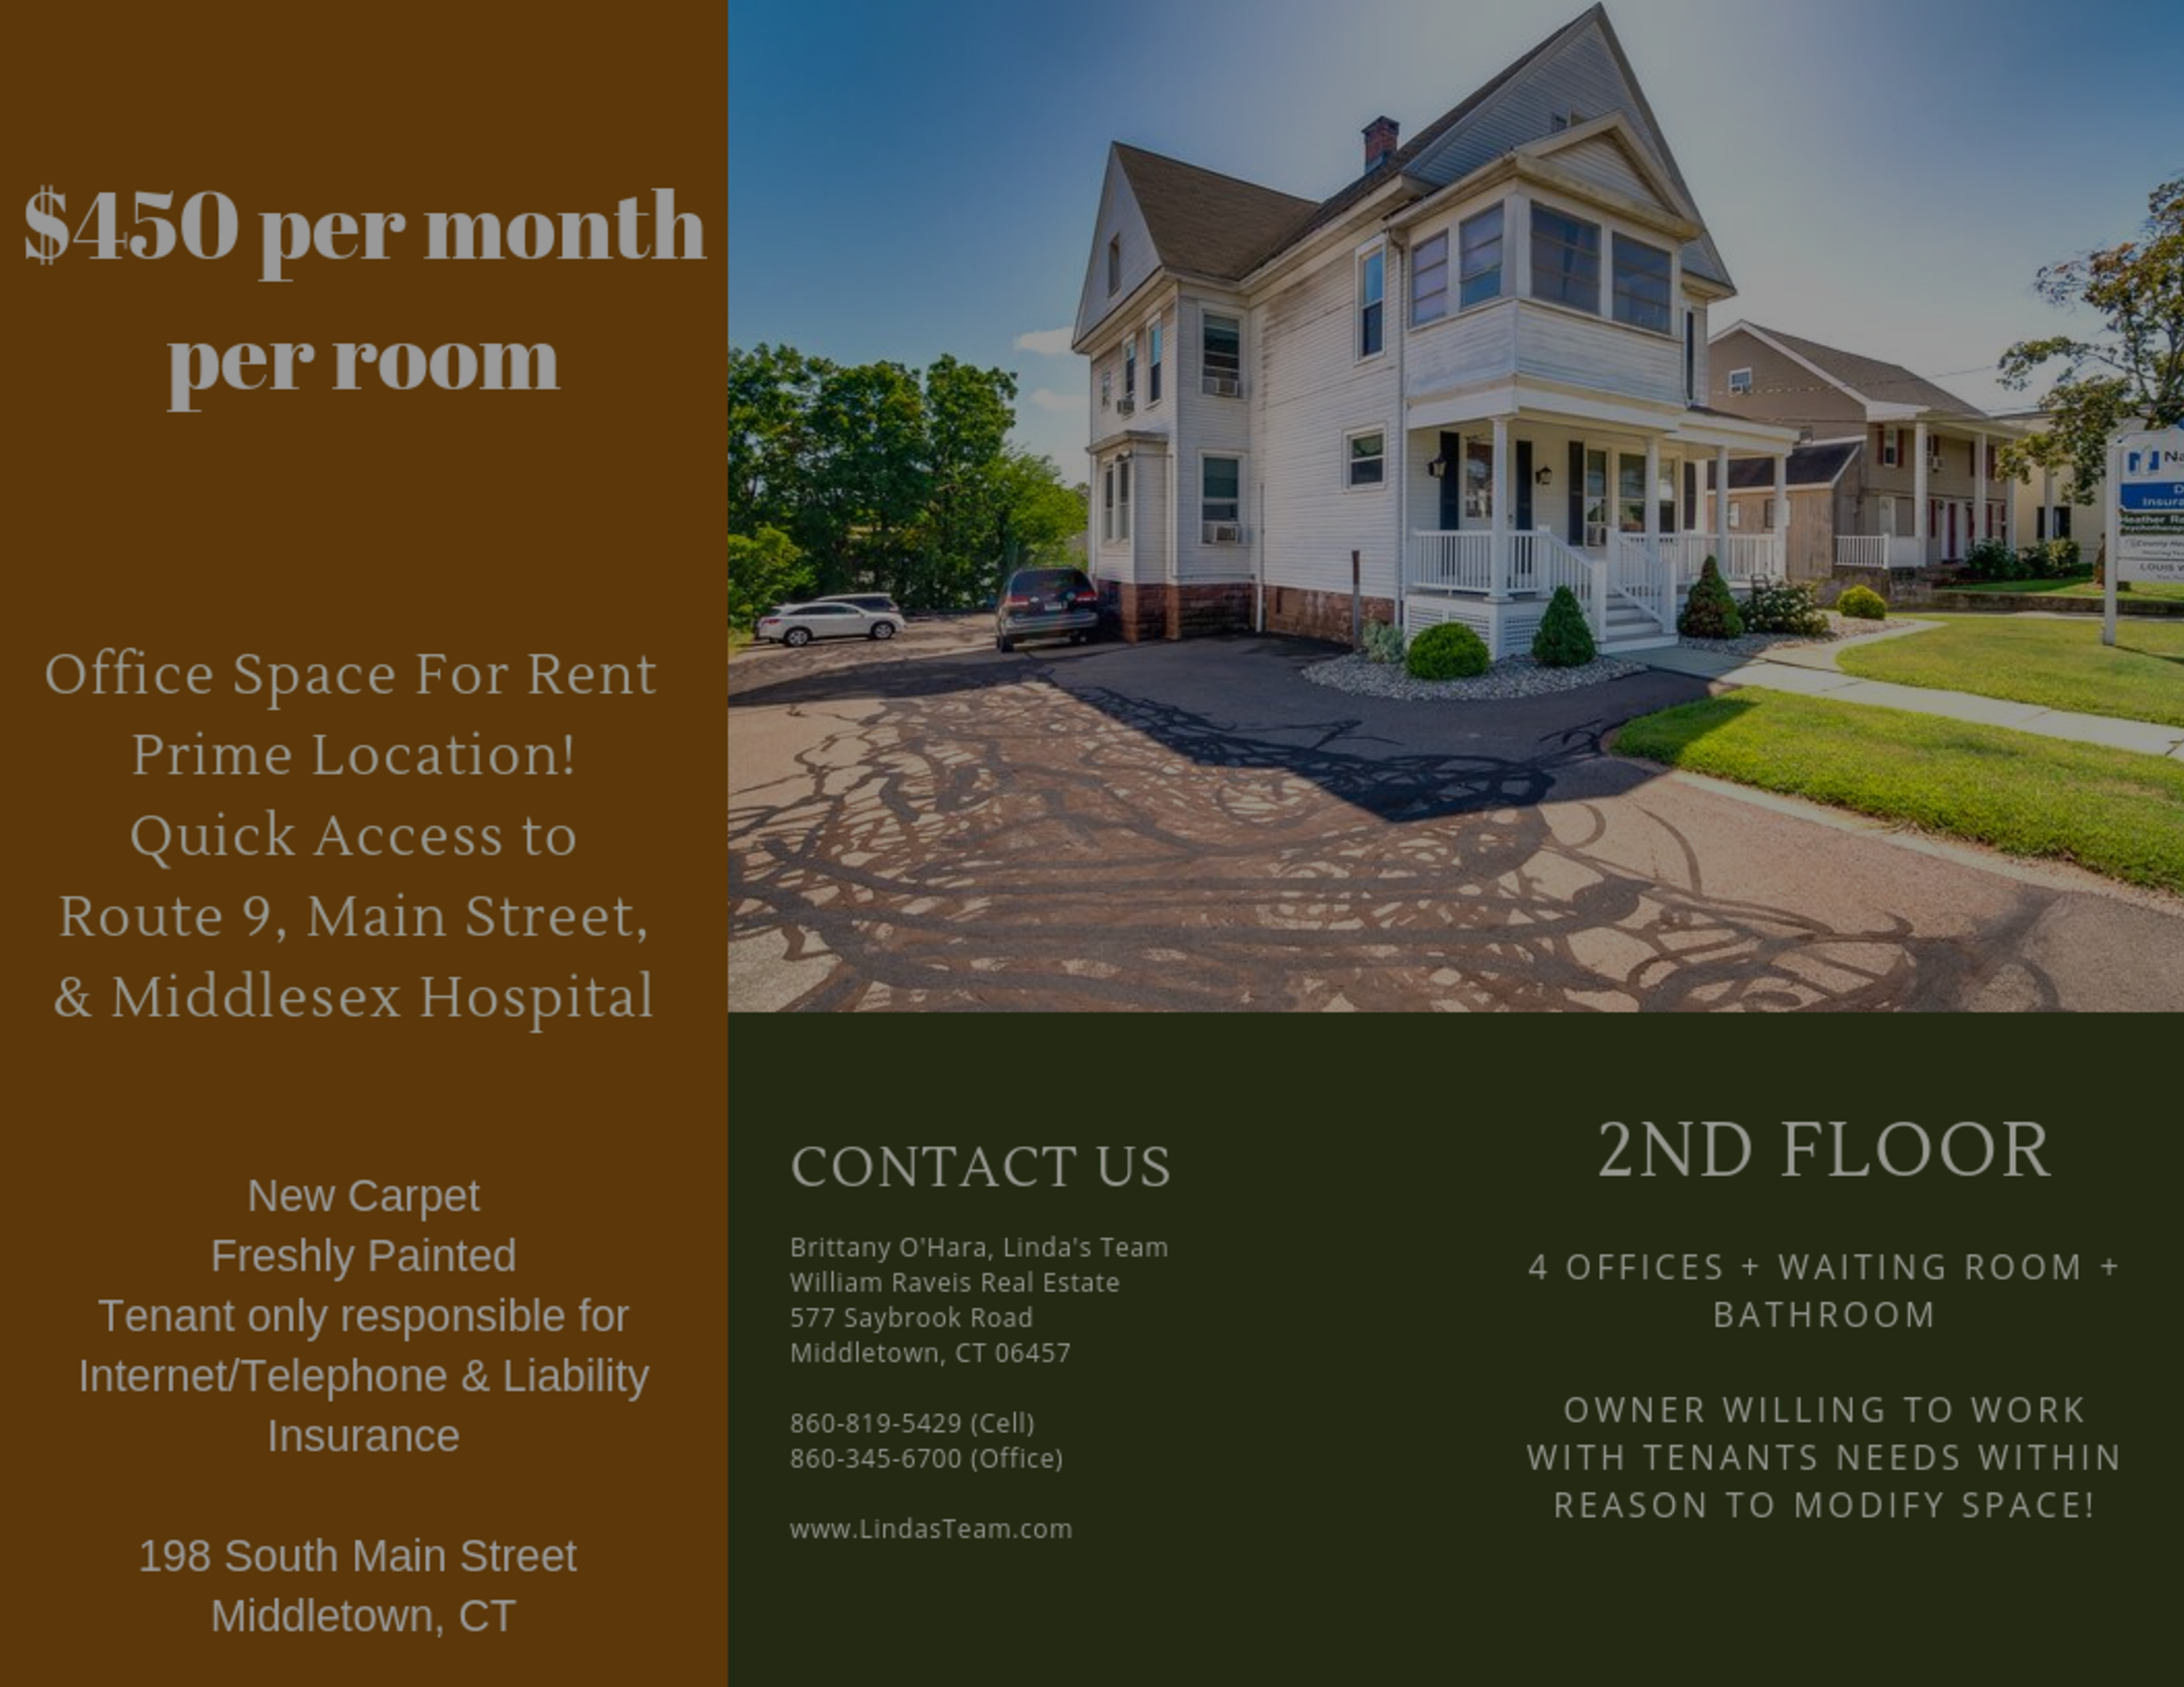 Office Space for Rent in Middletown!